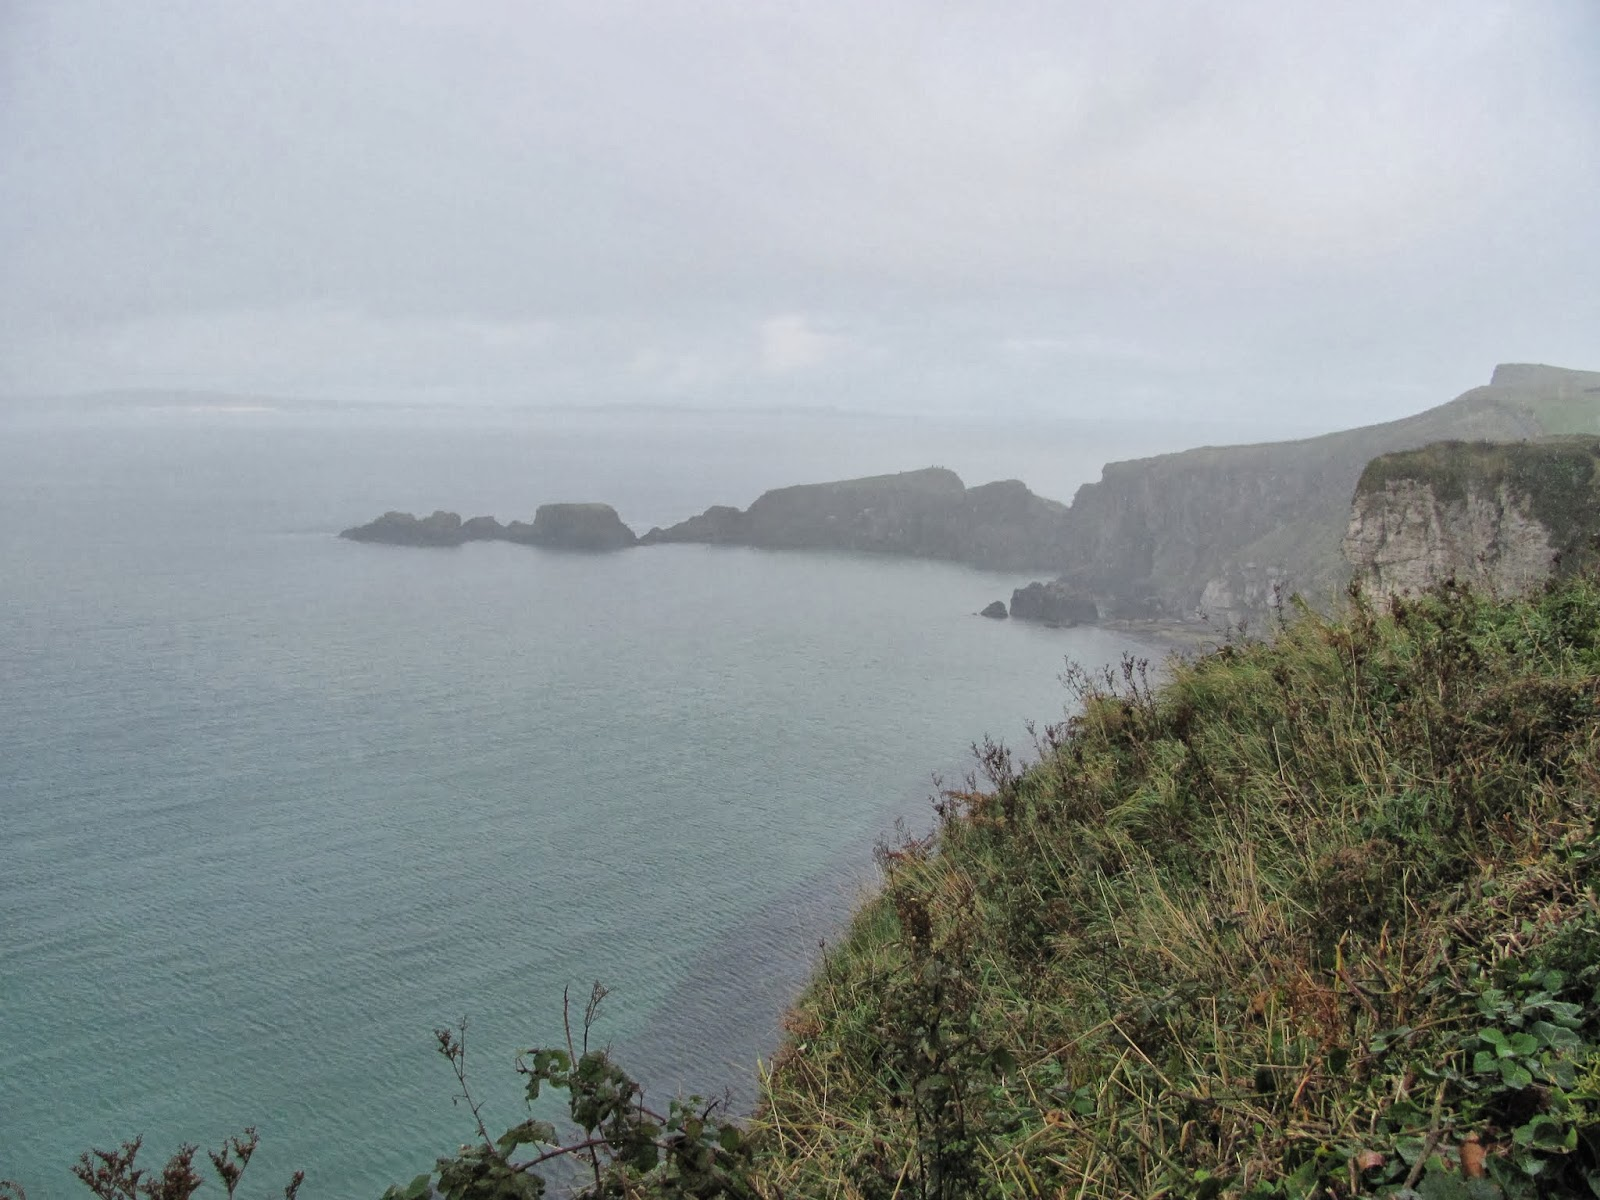 A look at the small islands from a distance at the Carrick-A-Rede Rope Bridge, Northern Ireland